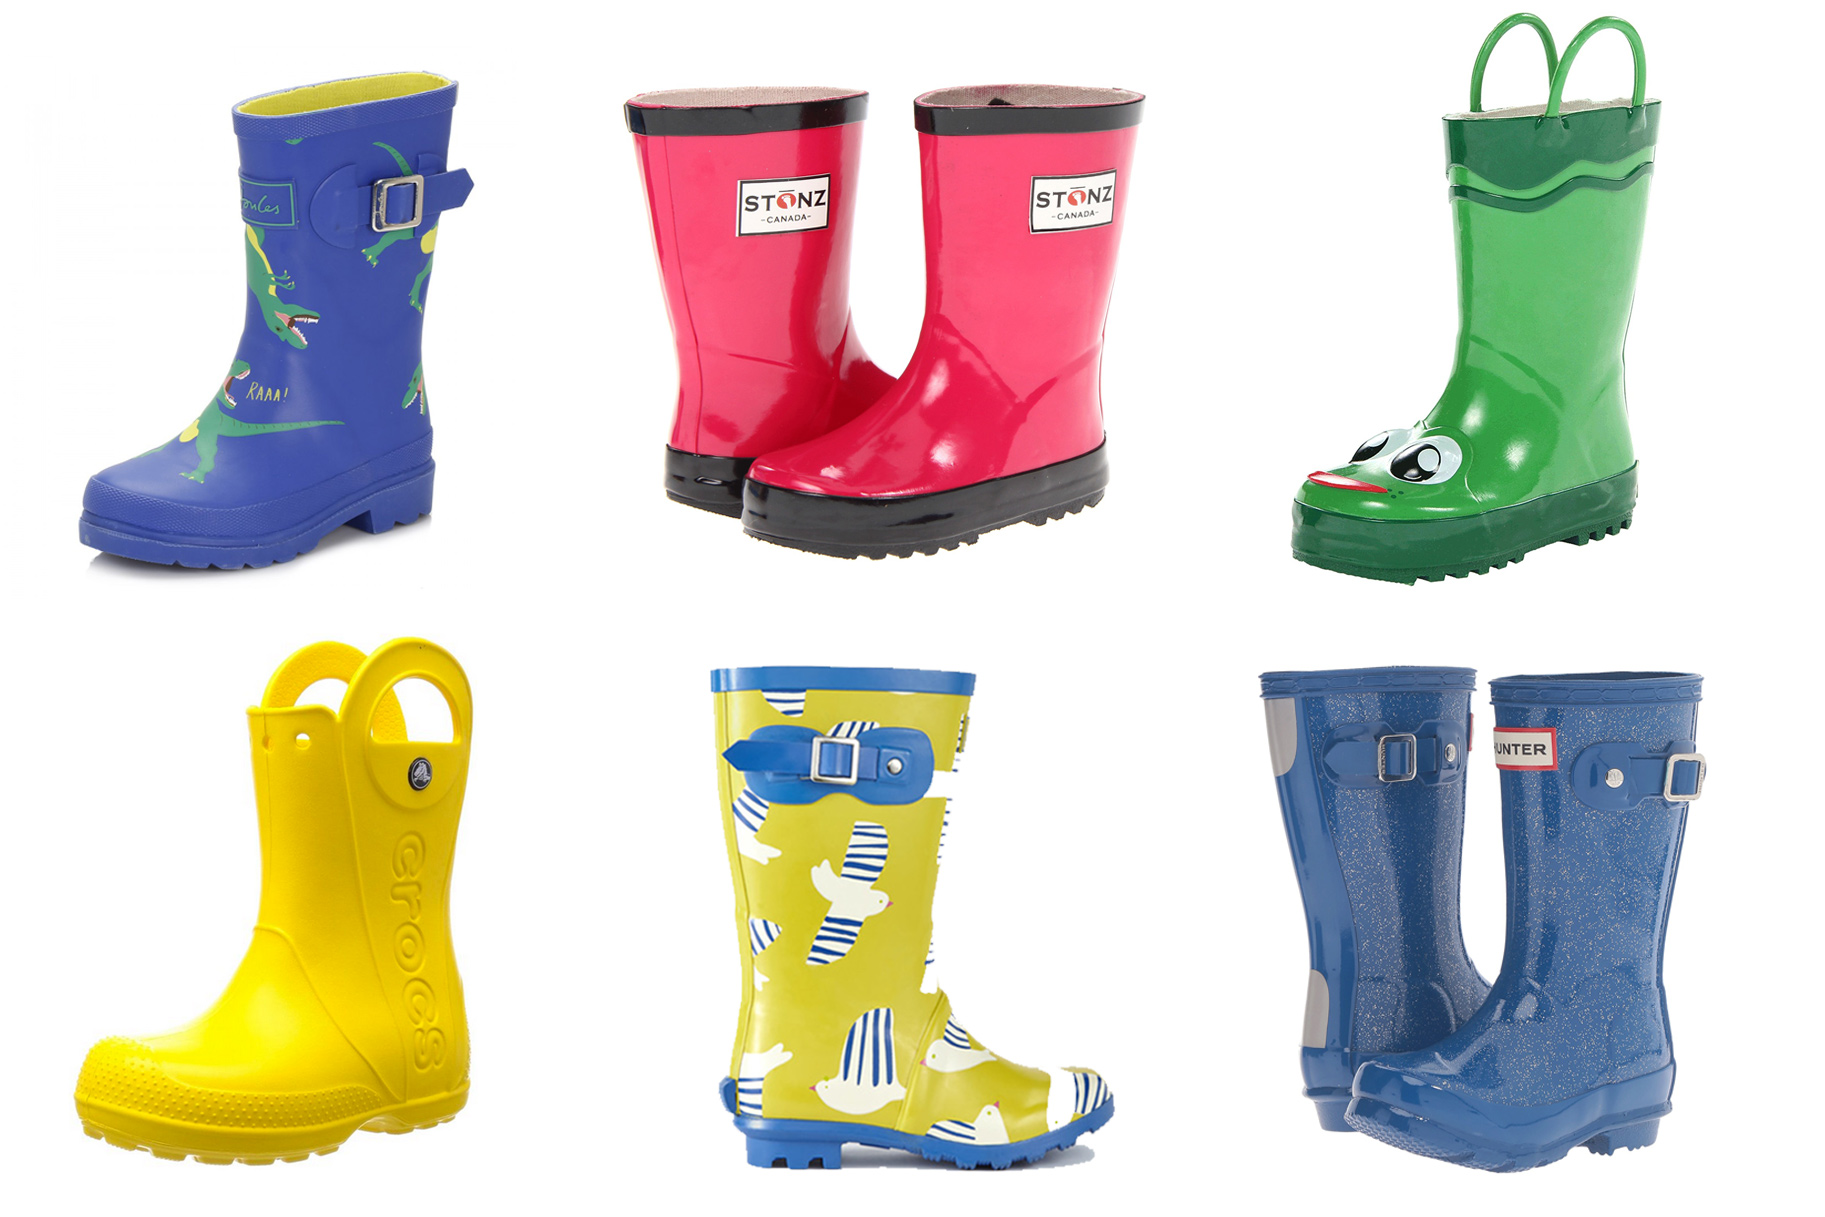 3af0acfa045 10 Adorable Wellies for Kids That Are Also Waterproof